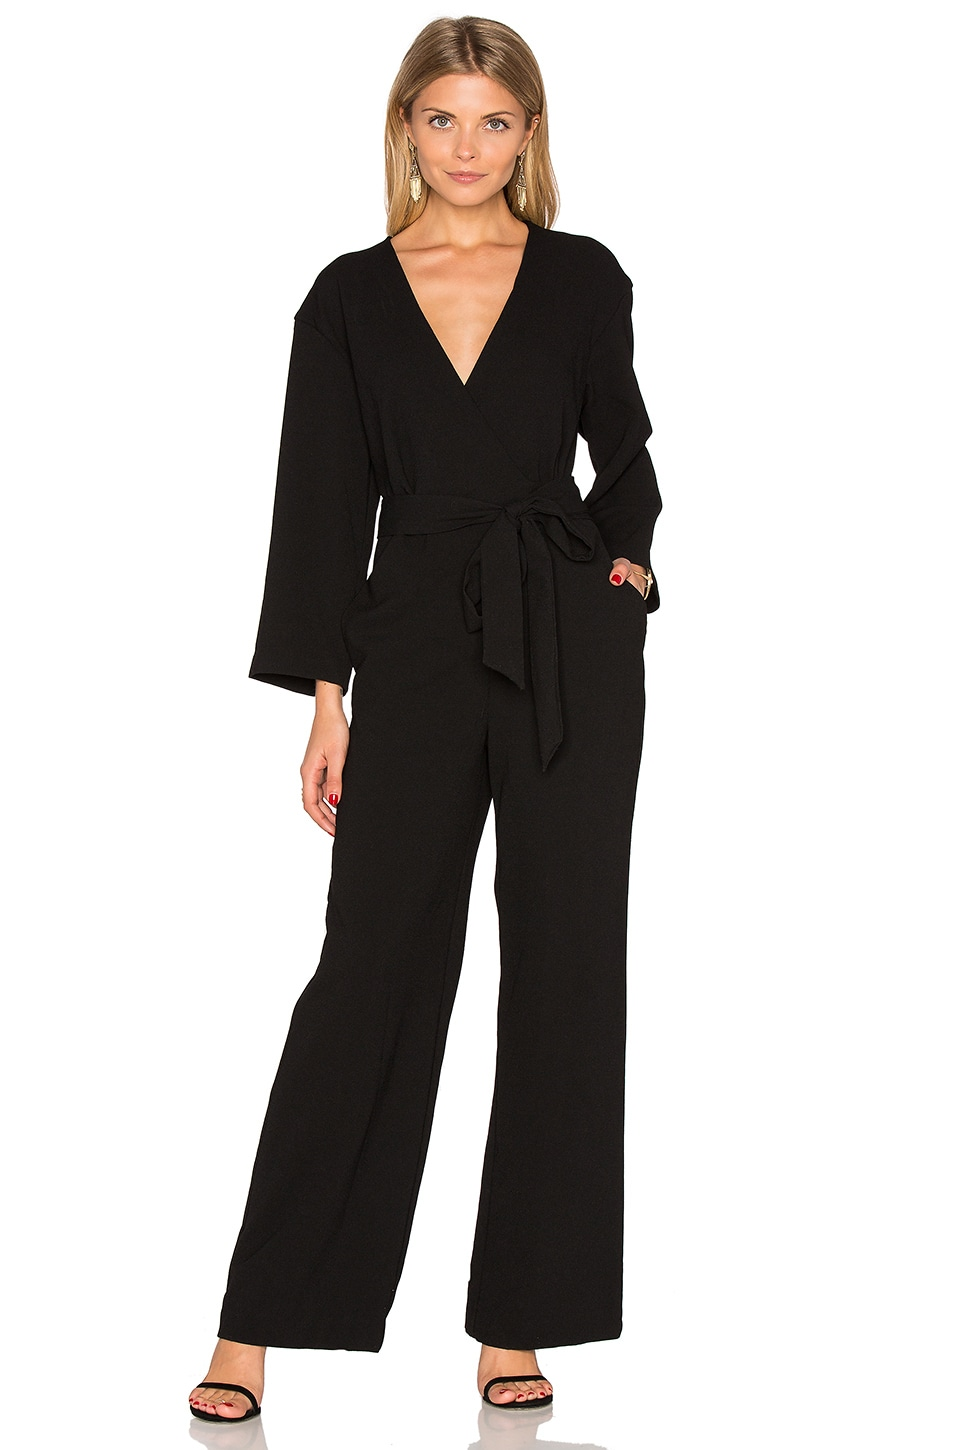 Enza Costa Long Sleeve Wrap Jumpsuit in Black